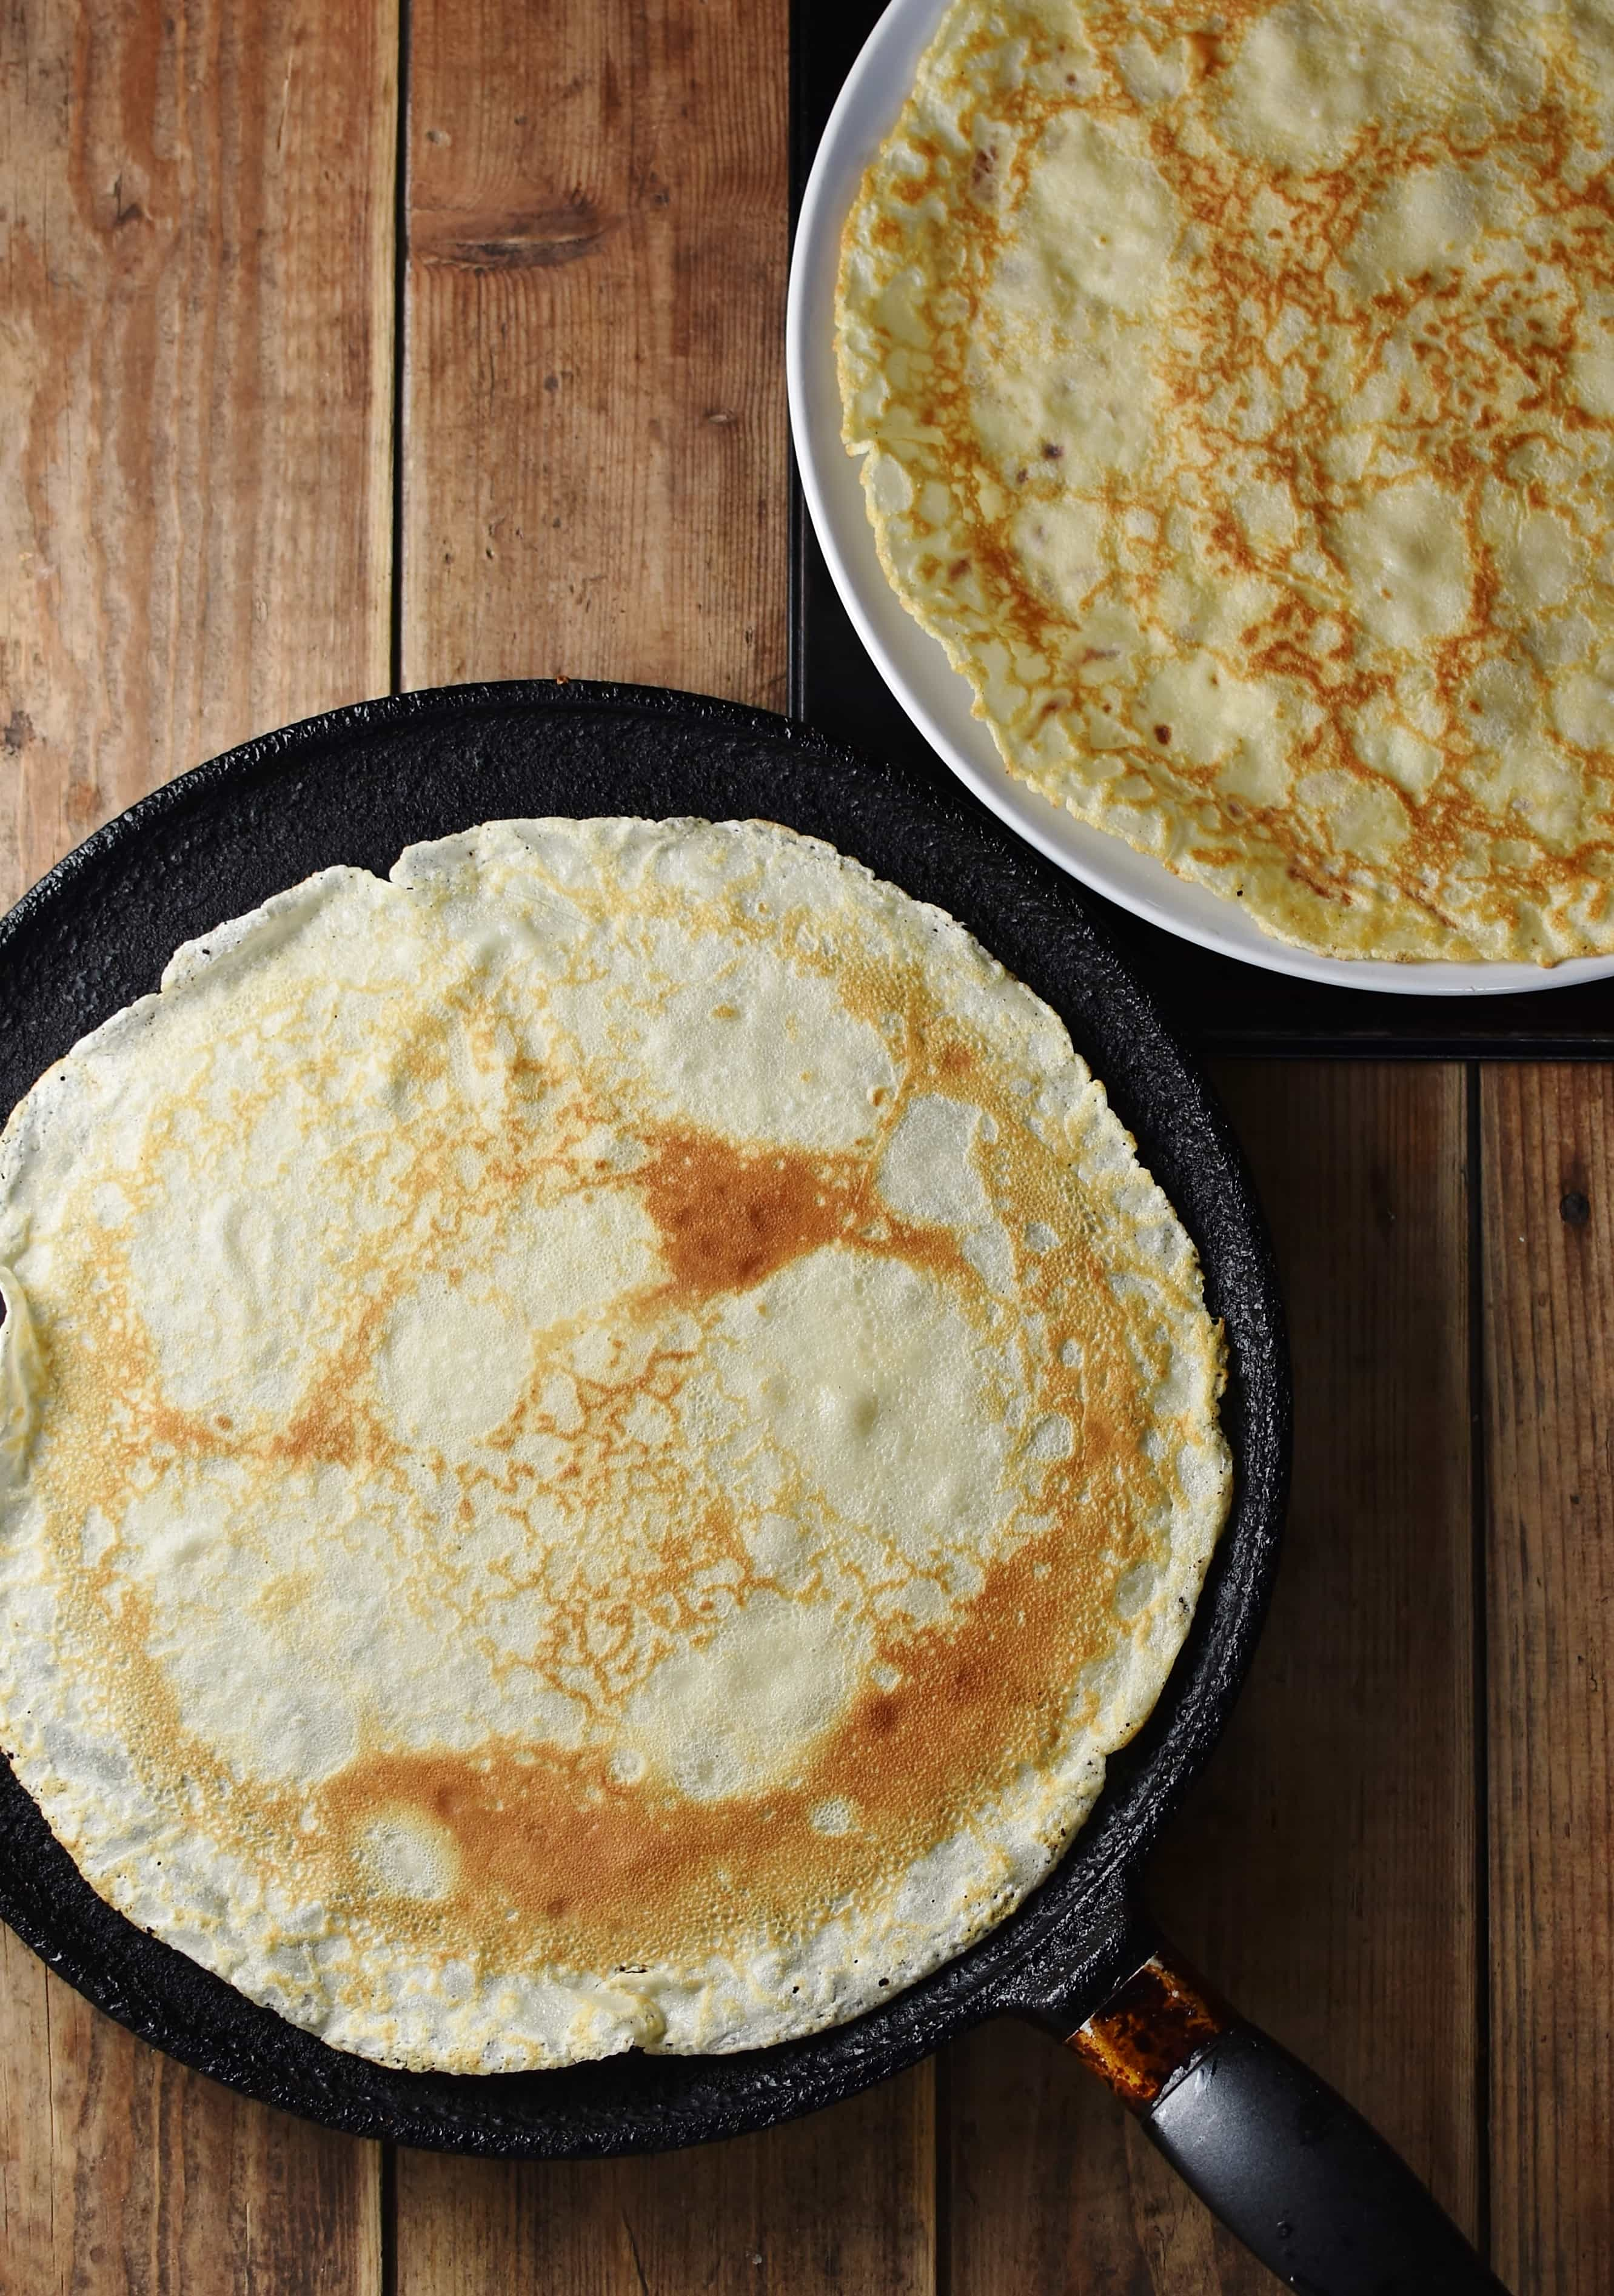 Large crepe in pancake pan and on top of large plate.